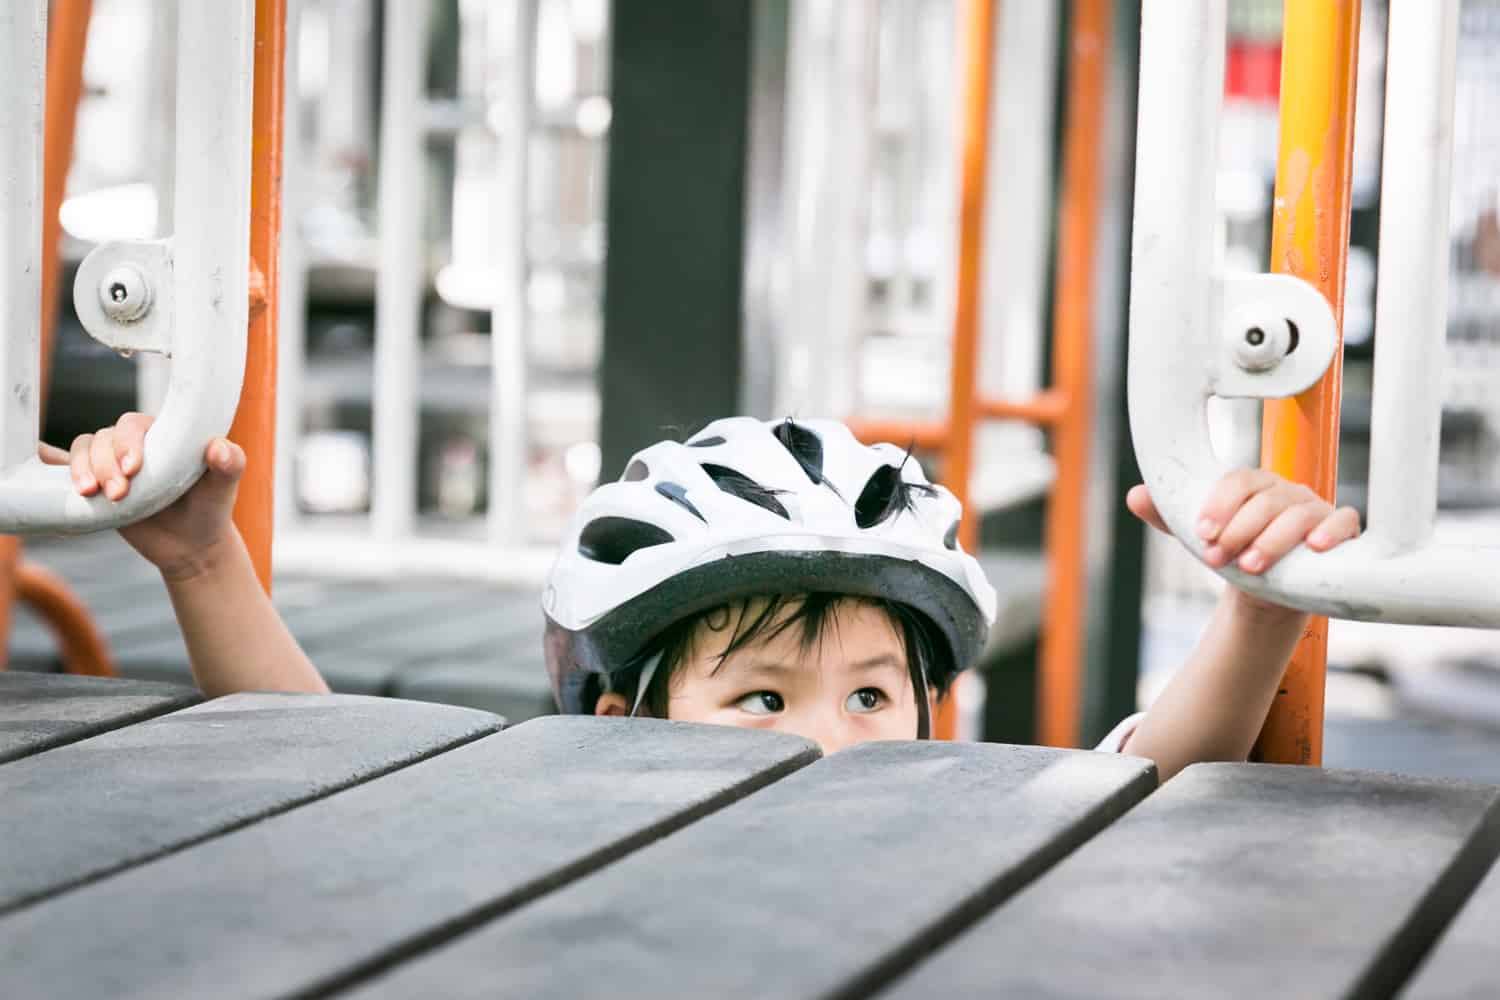 Little boy wearing bike helmet peeking over edge of playground